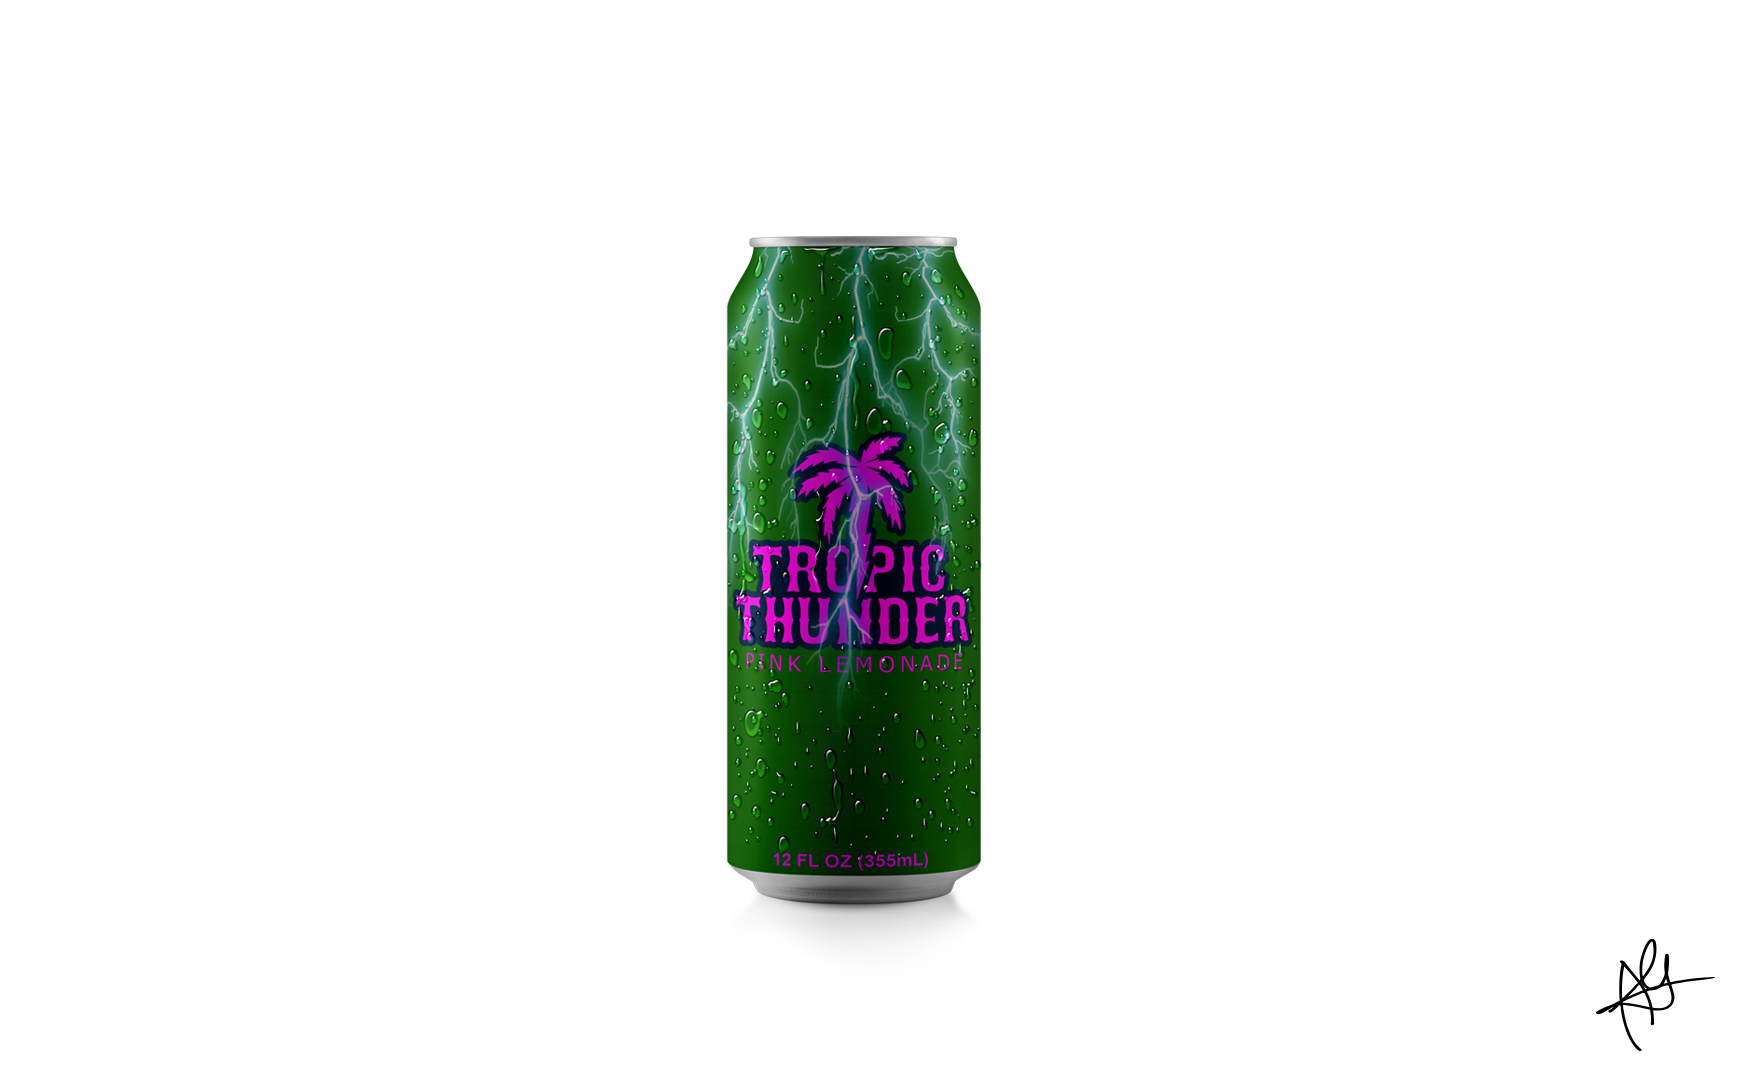 TROPIC THUNDER PINK LEMONADE MOCKUP